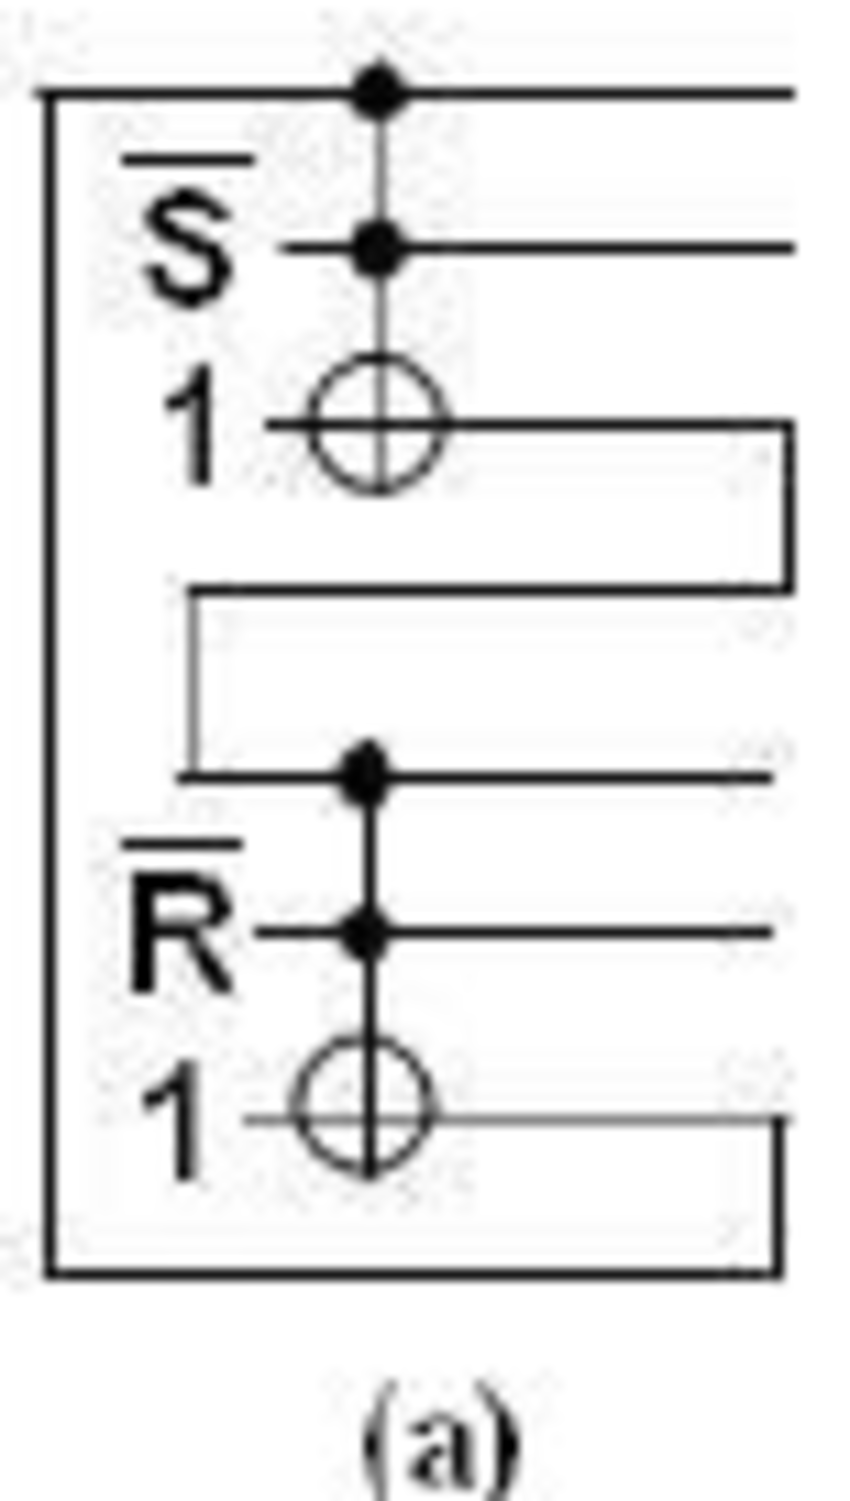 medium resolution of circuits of a rice sr latch and b rice sr latch with